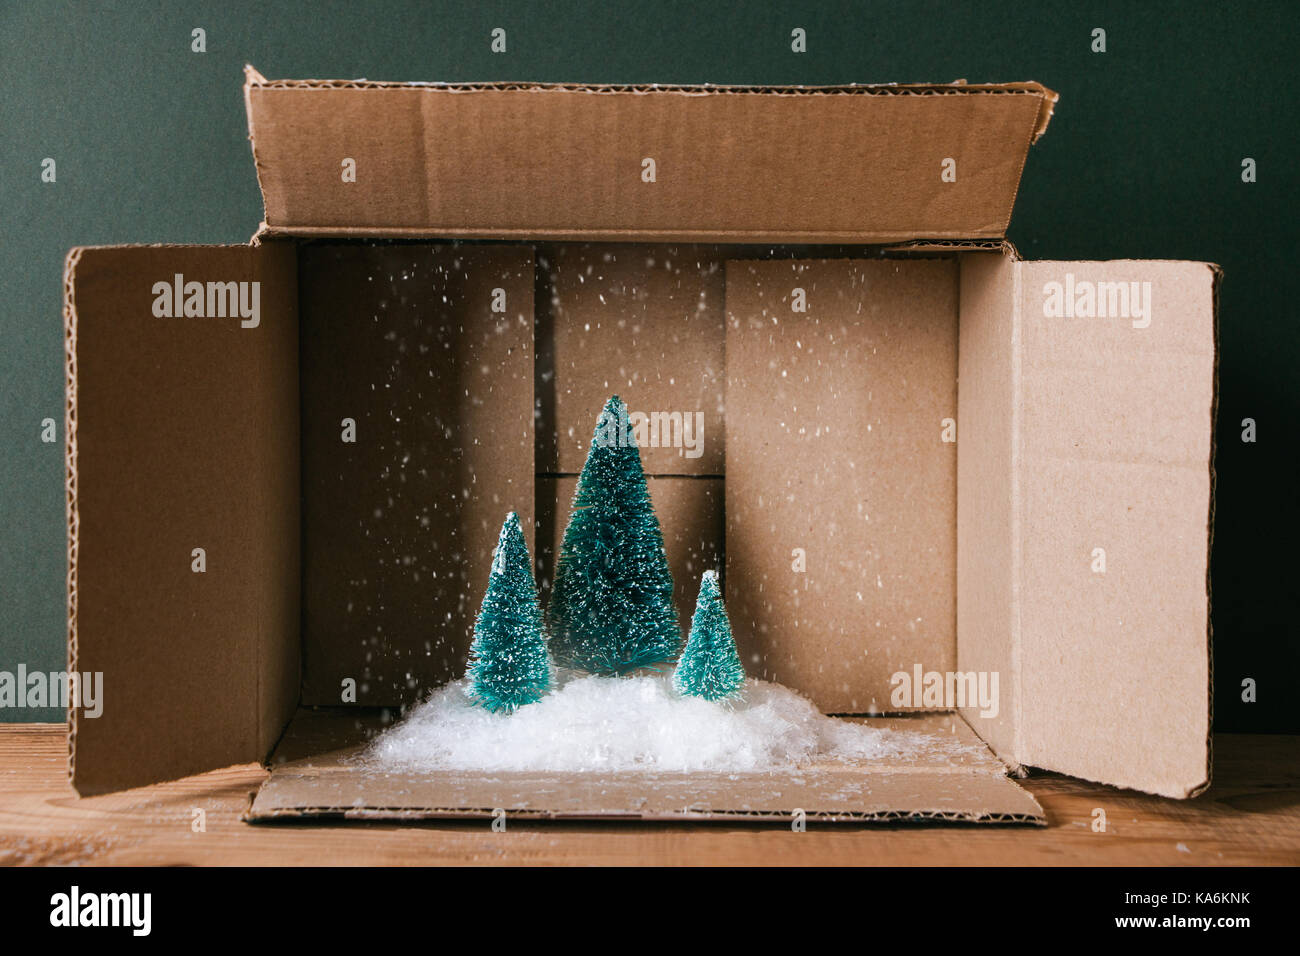 miniature of christmas trees with snow in a cardboard box concept of magic christmas present - Christmas Tree In A Box